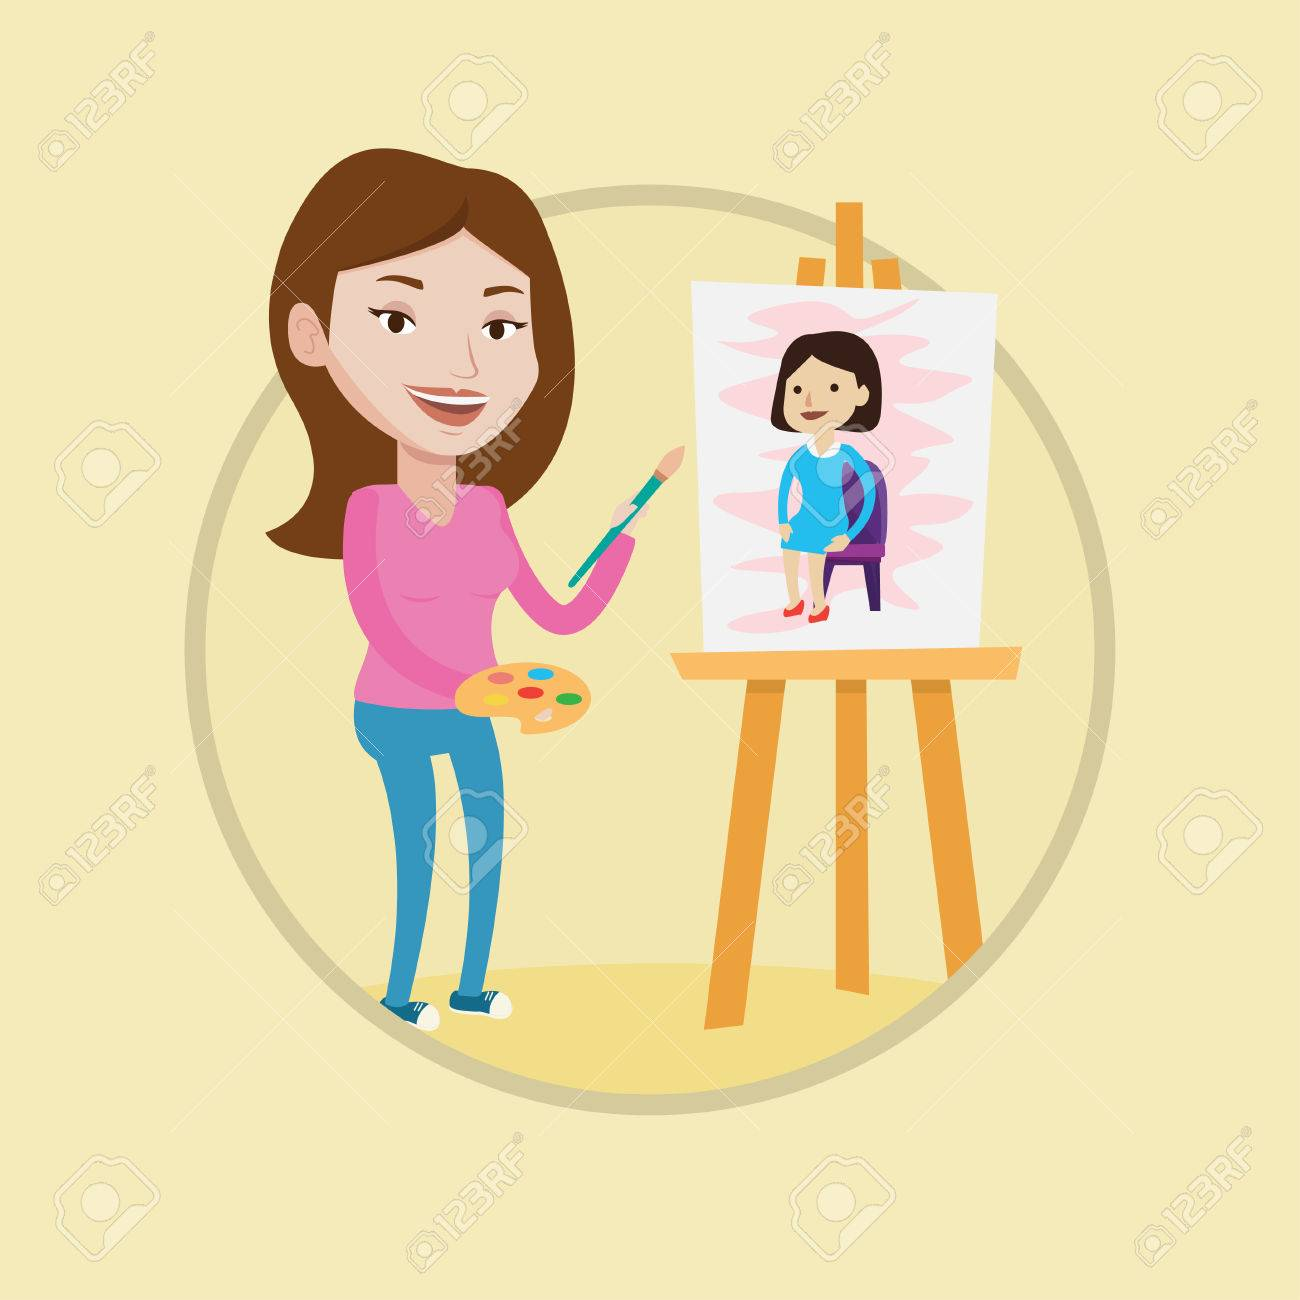 Artist clipart woman artist. Free drawing download clip